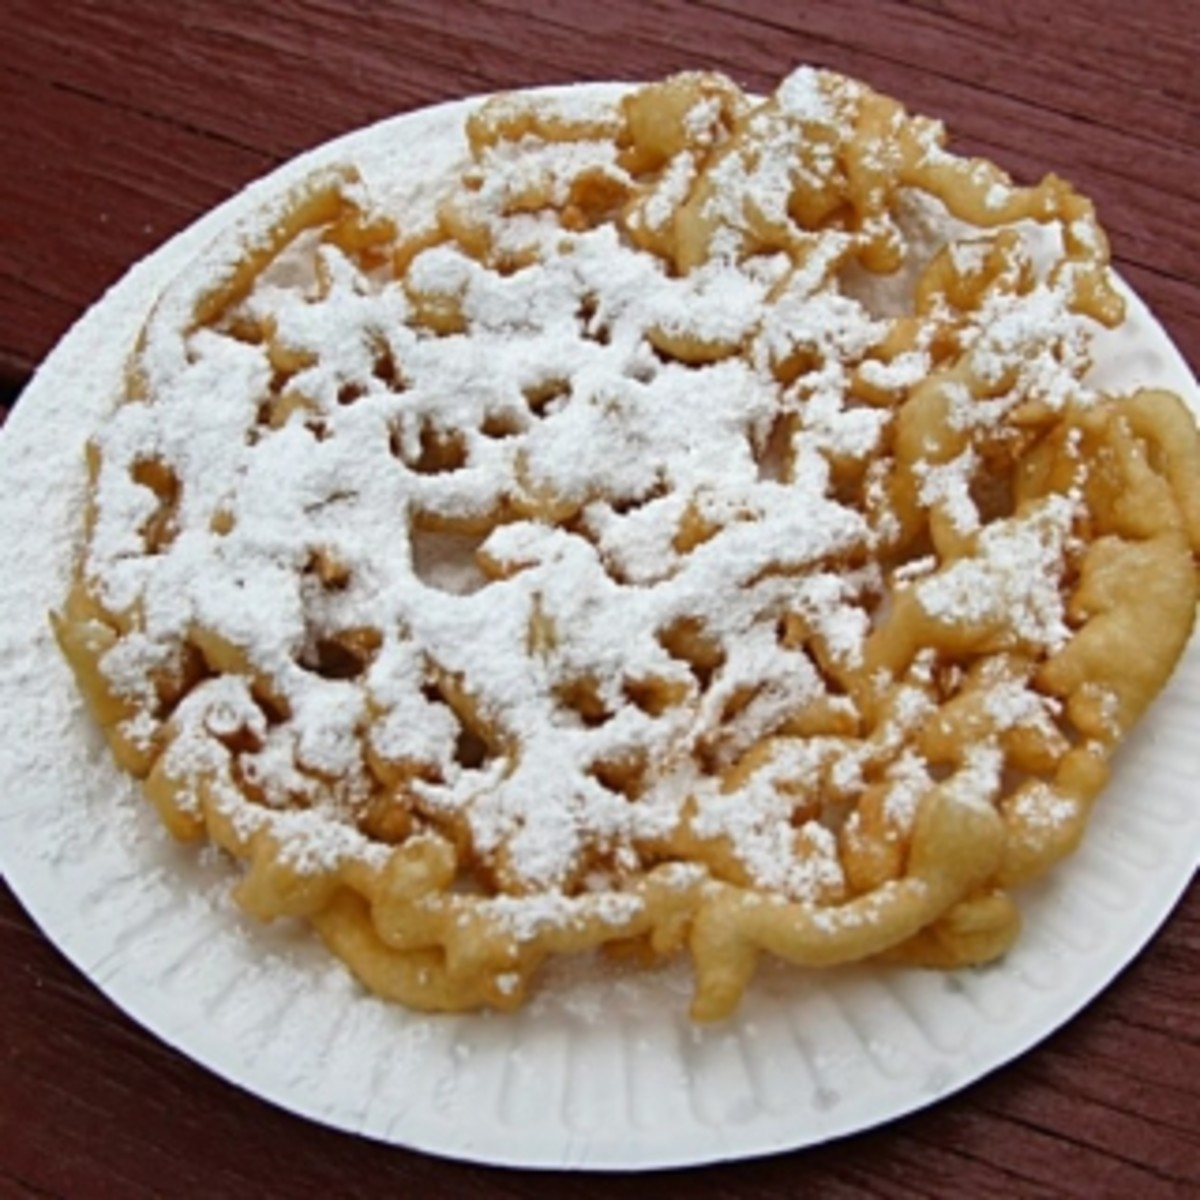 Here's a recipe for one of my favorite things in the world and that is a delicious deep fried funnel cake.